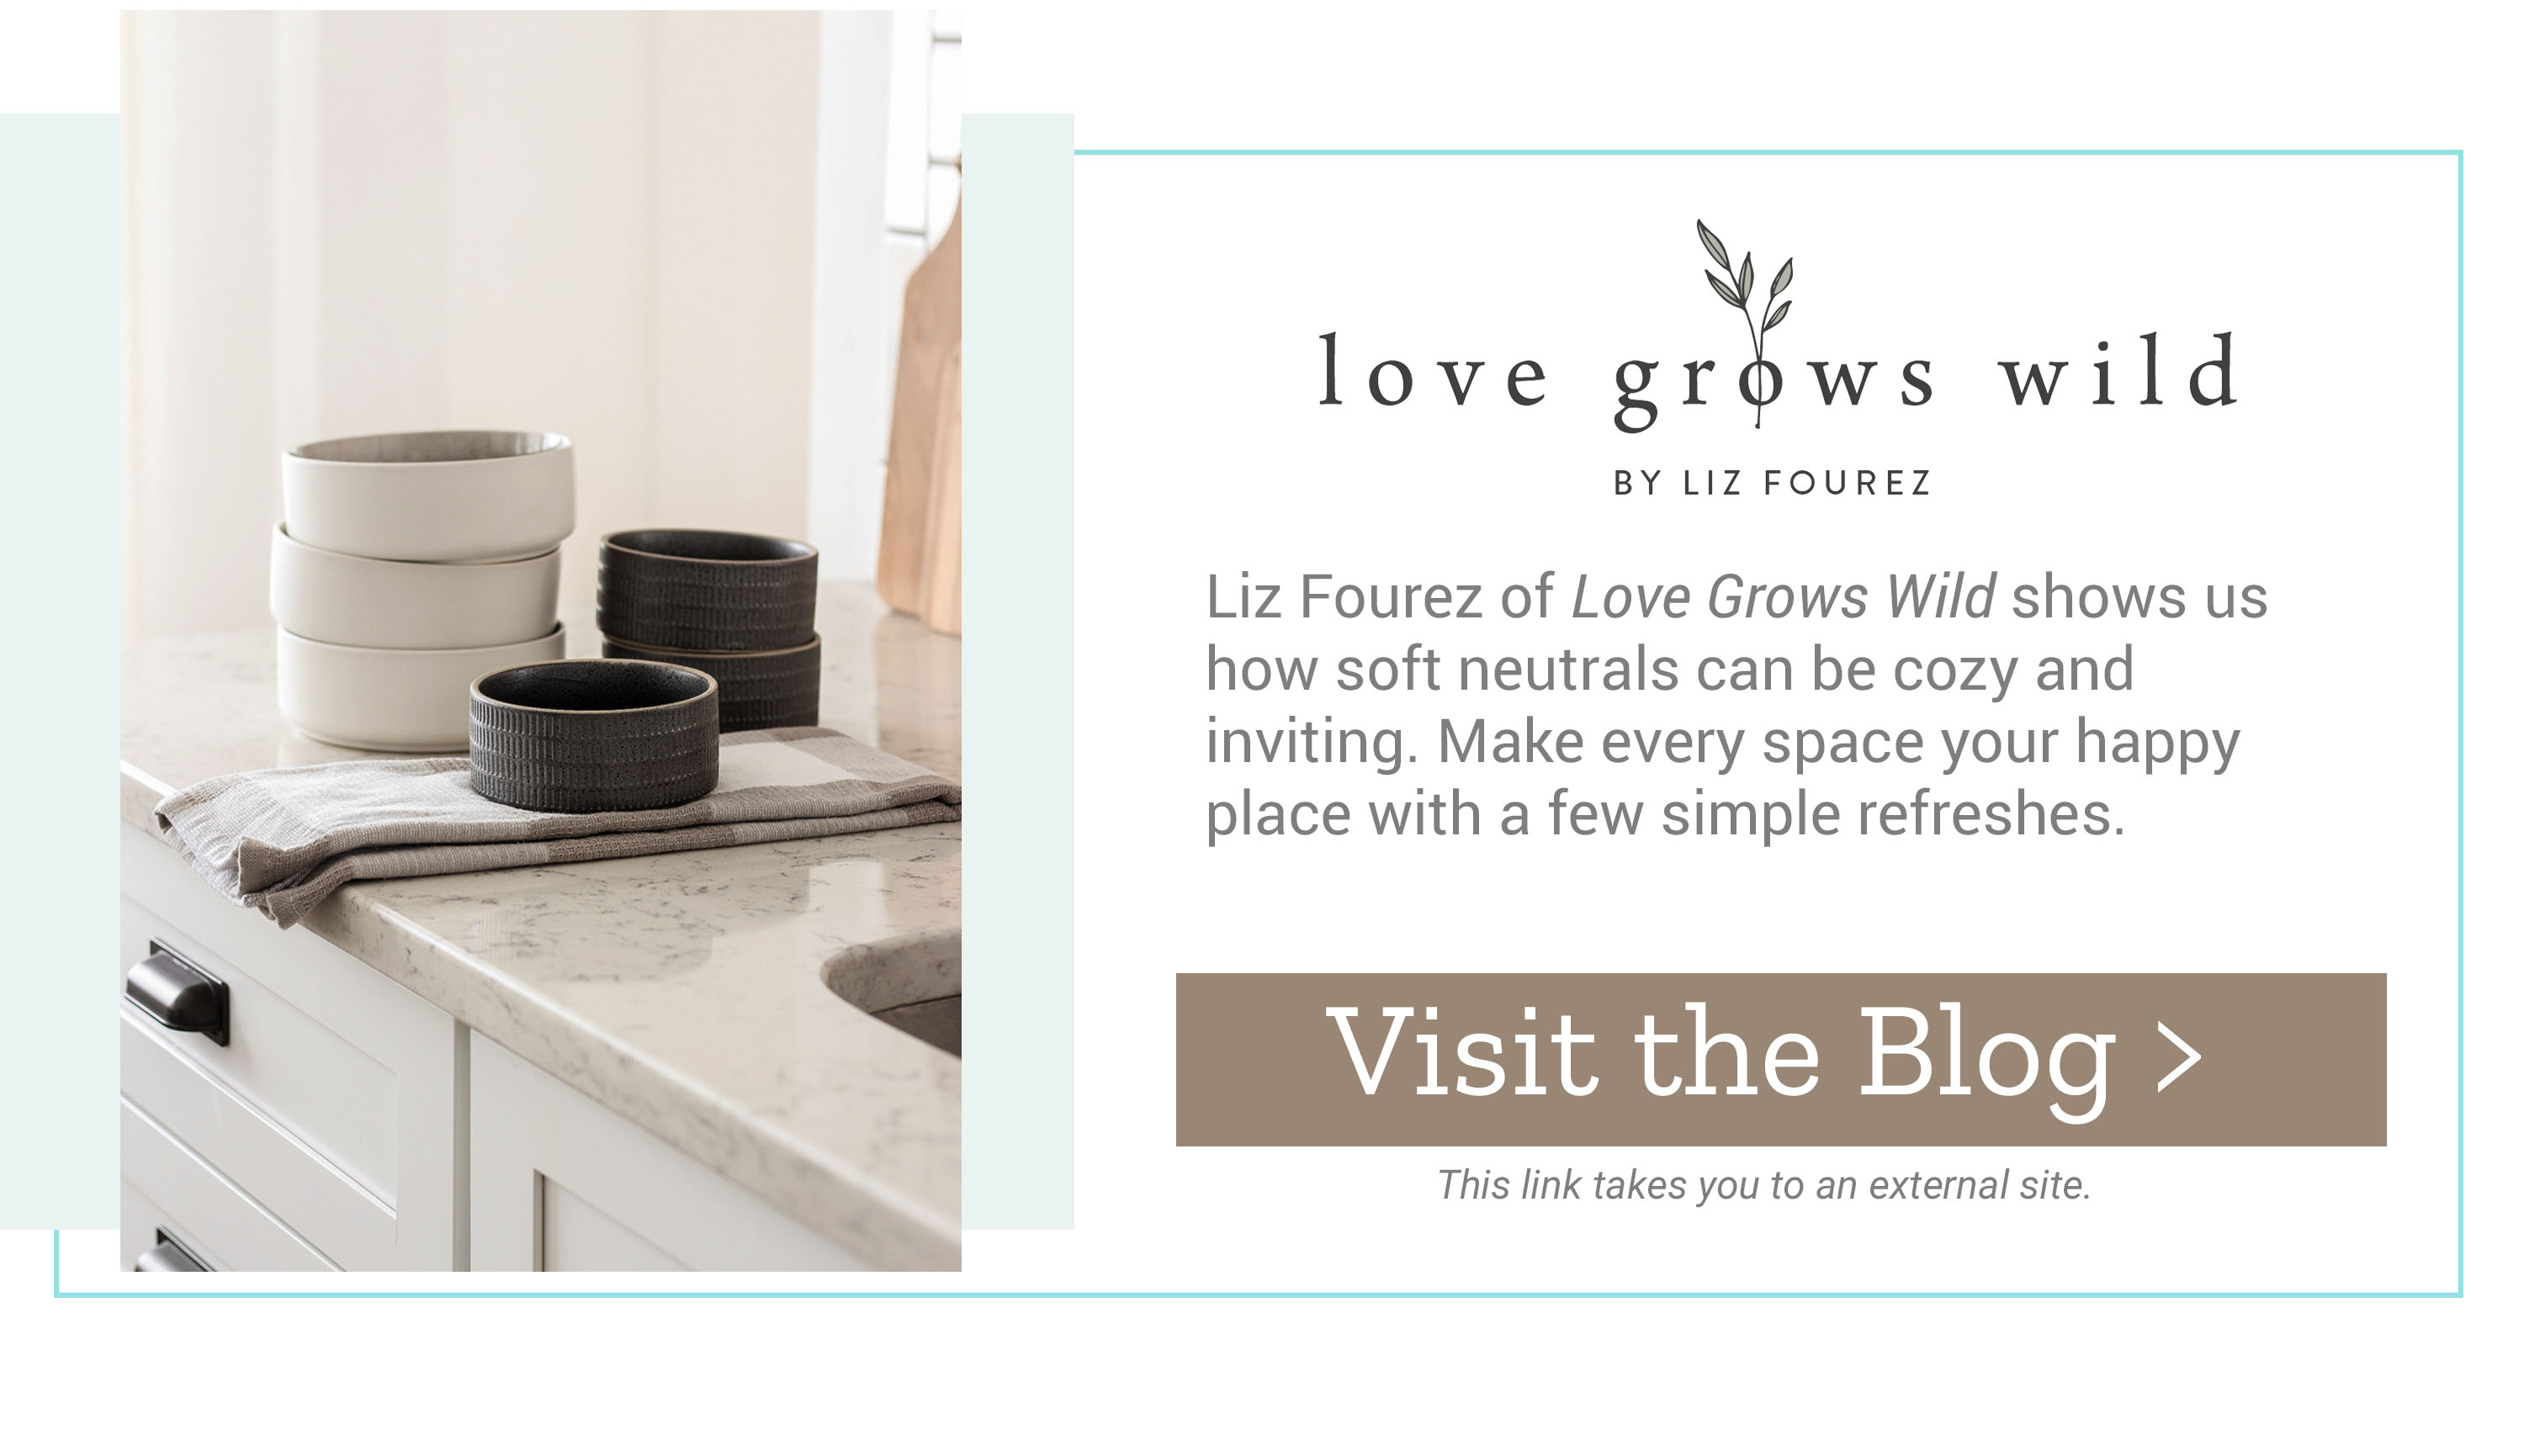 Love Grows Wild - Liz Fourez of Love Grows Wild shows us how soft neutrals can be cozy and inviting. Make every space your happy place with a few simple refreshes. Visit the Blog >